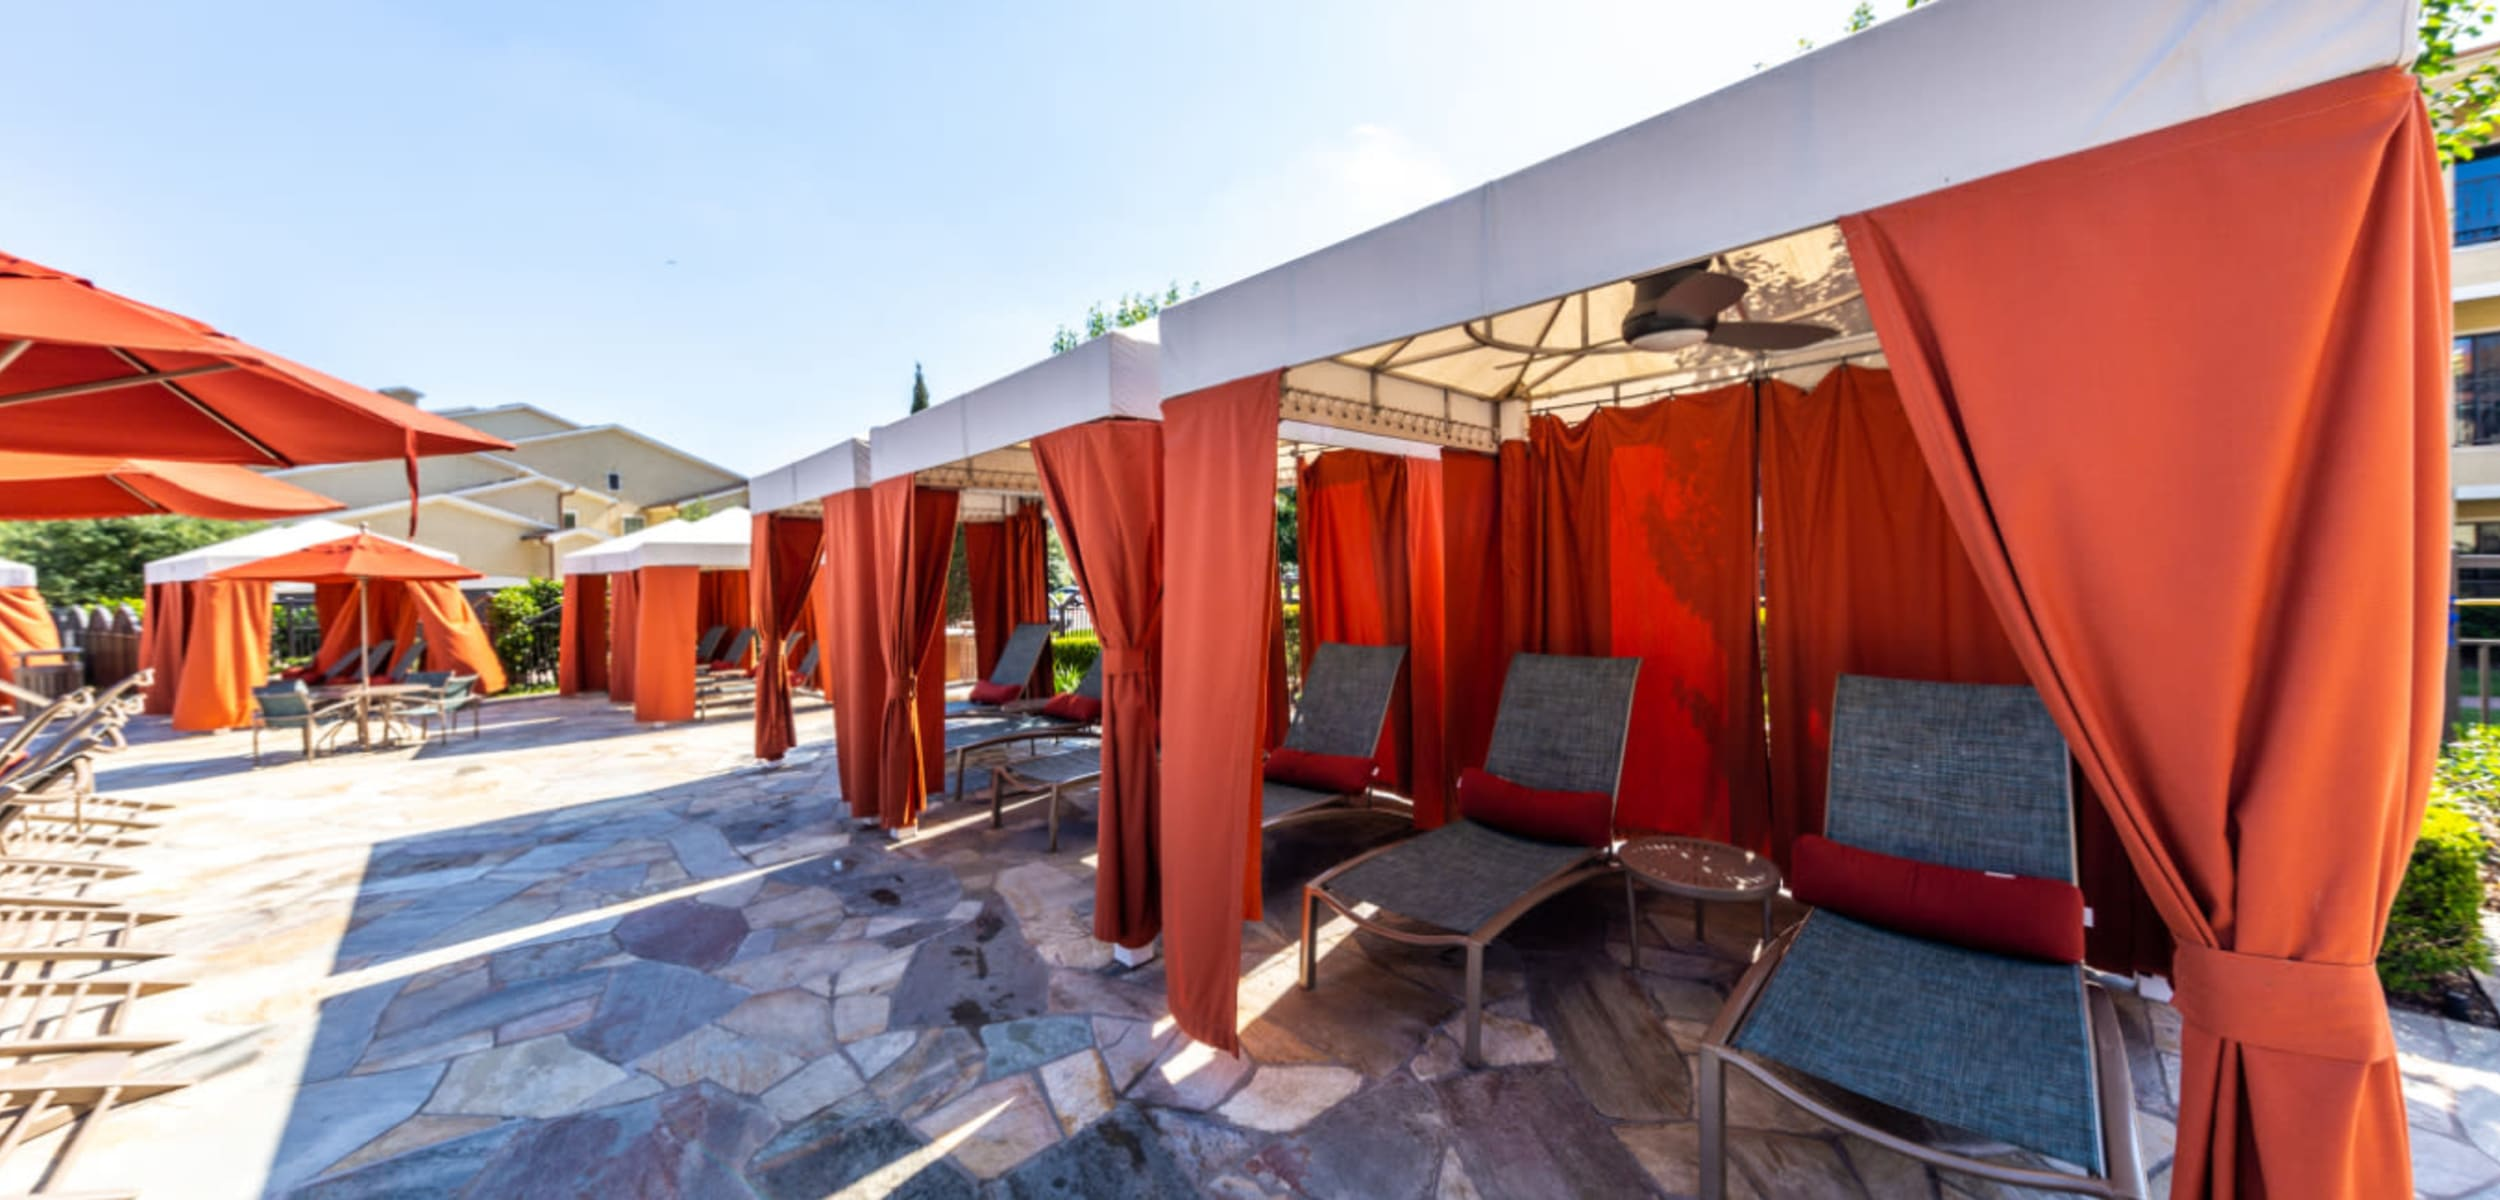 Resort style gazebos with lounge area chairs at Marquis at the Reserve in Katy, Texas